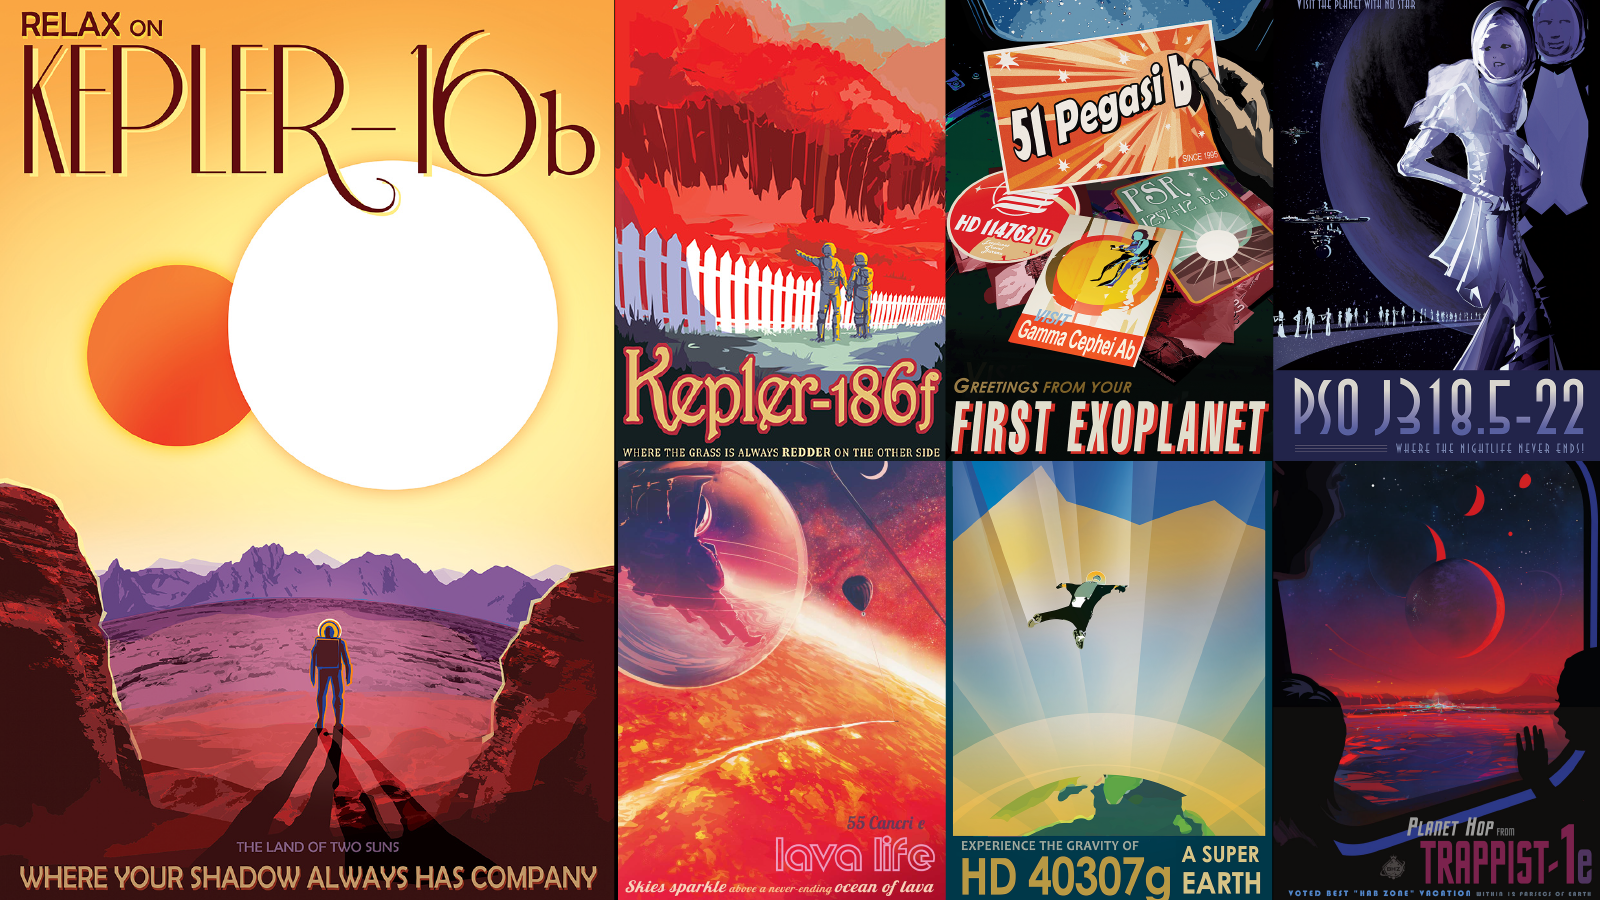 Collage of exoplanet posters from NASA